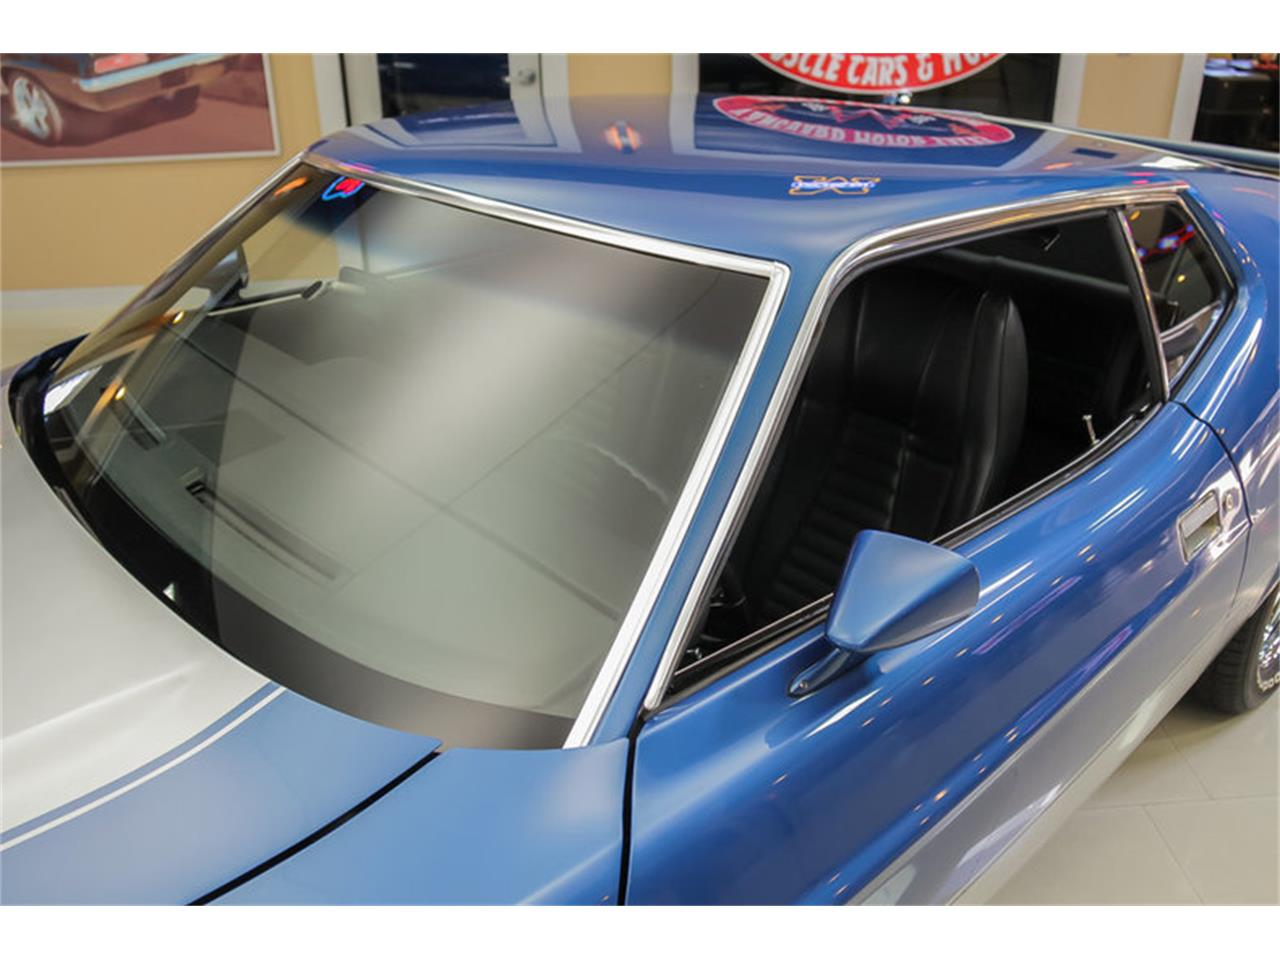 Large Picture of Classic '73 Ford Mustang Mach 1 Q Code - $34,900.00 Offered by Vanguard Motor Sales - JDX1